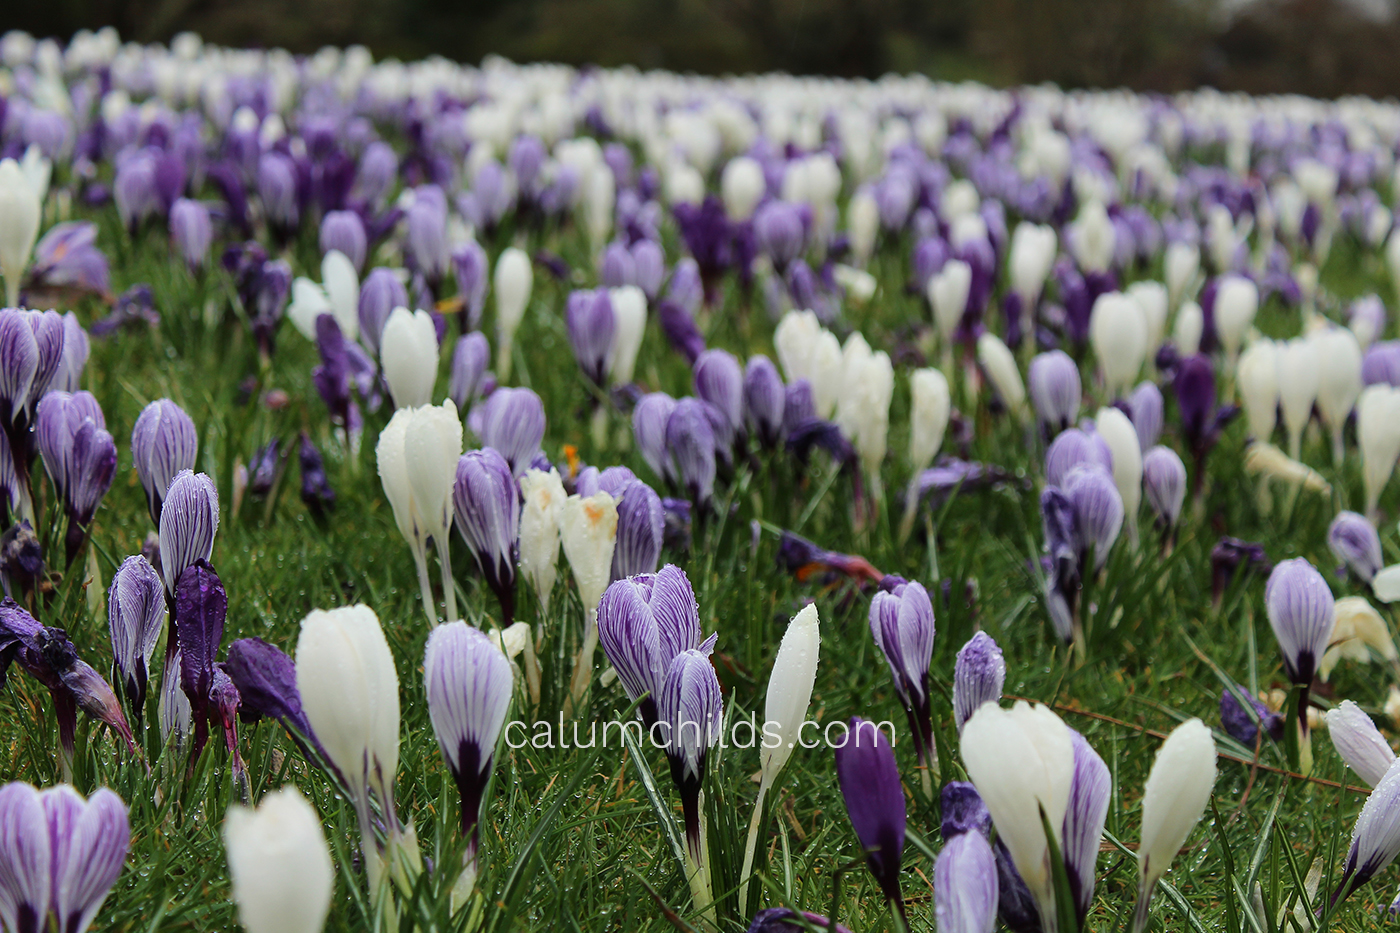 Sharp light purple and white crocuses in the foreground with blurred ones in the background.